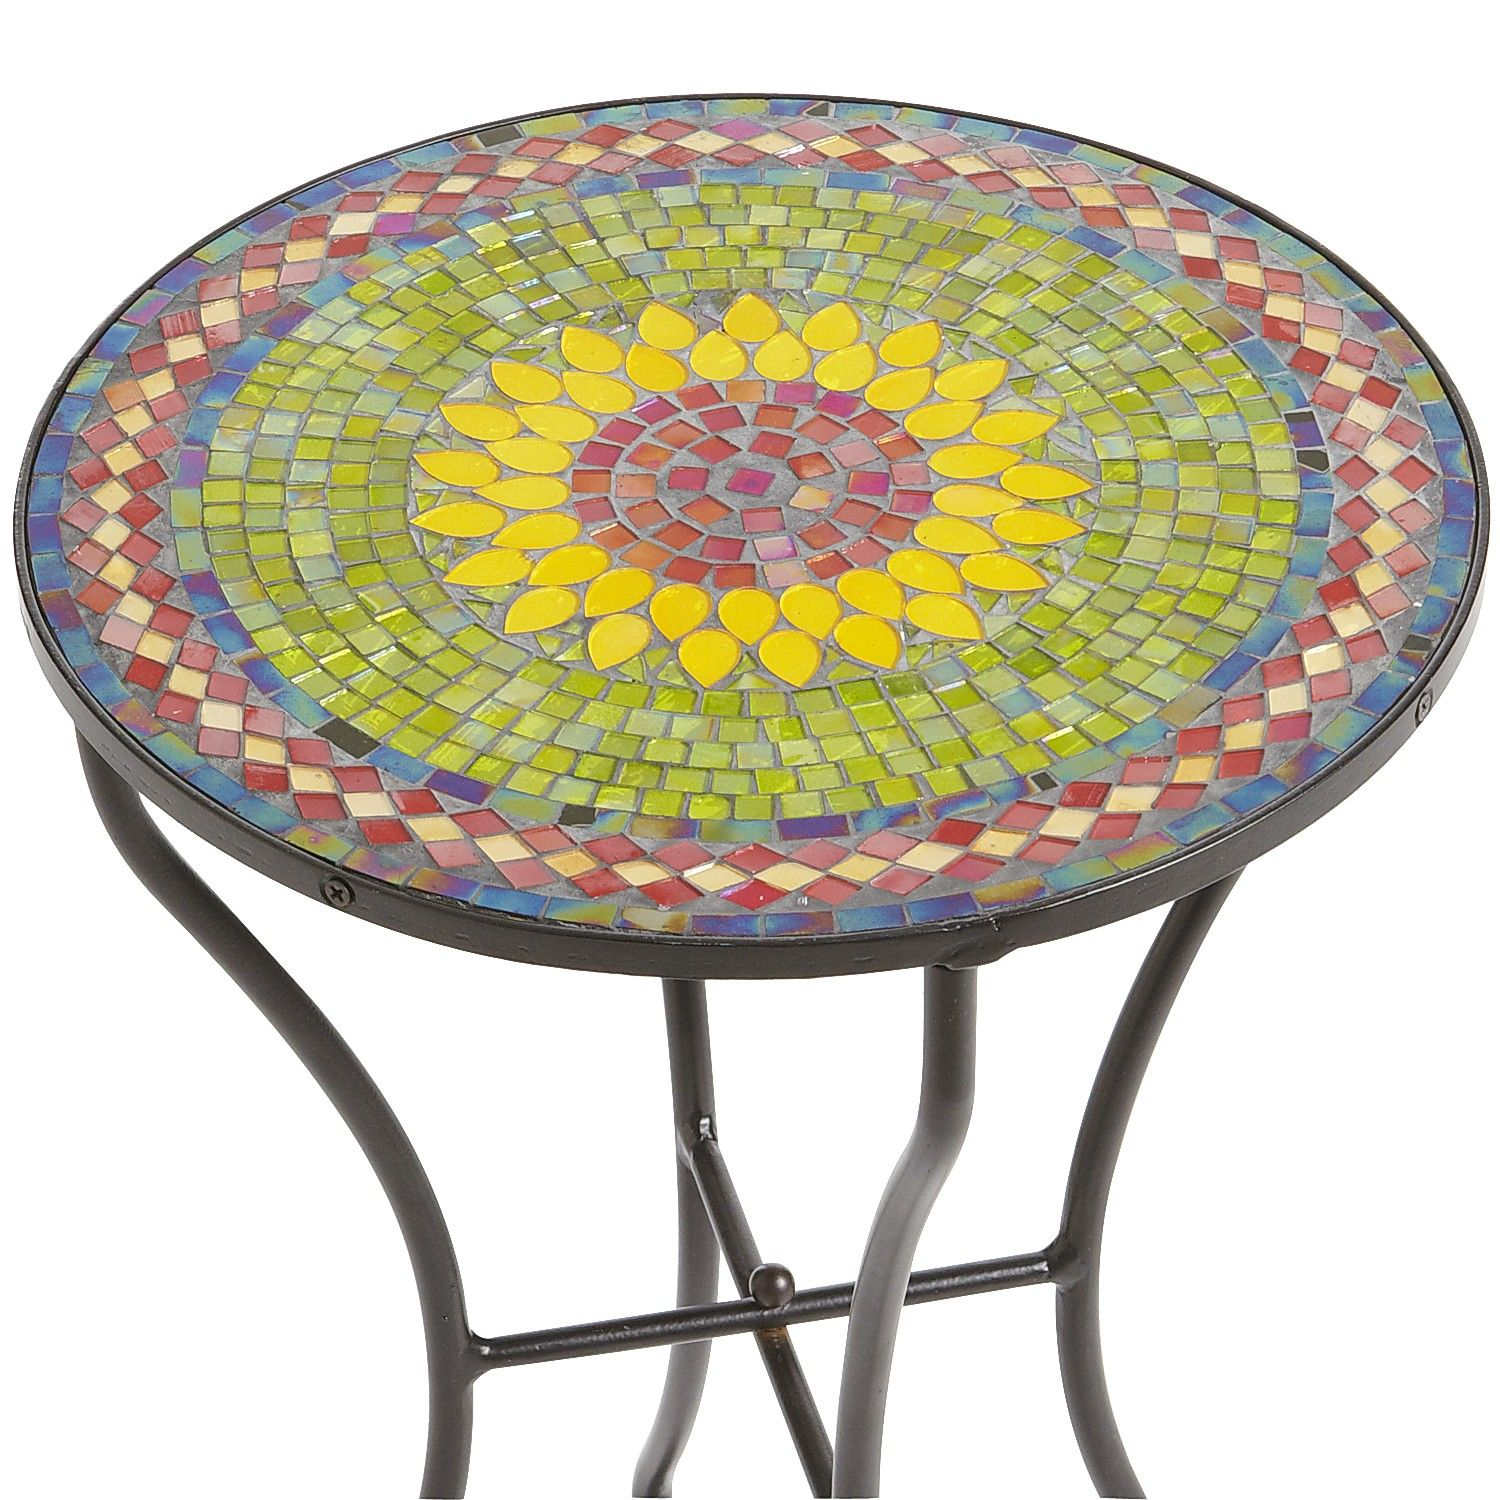 sunflower mosaic accent table pier imports bombay tables half round circular glass side ethan allen ballan oval coffee with shelf threshold teal home ornaments bunnings chairs and